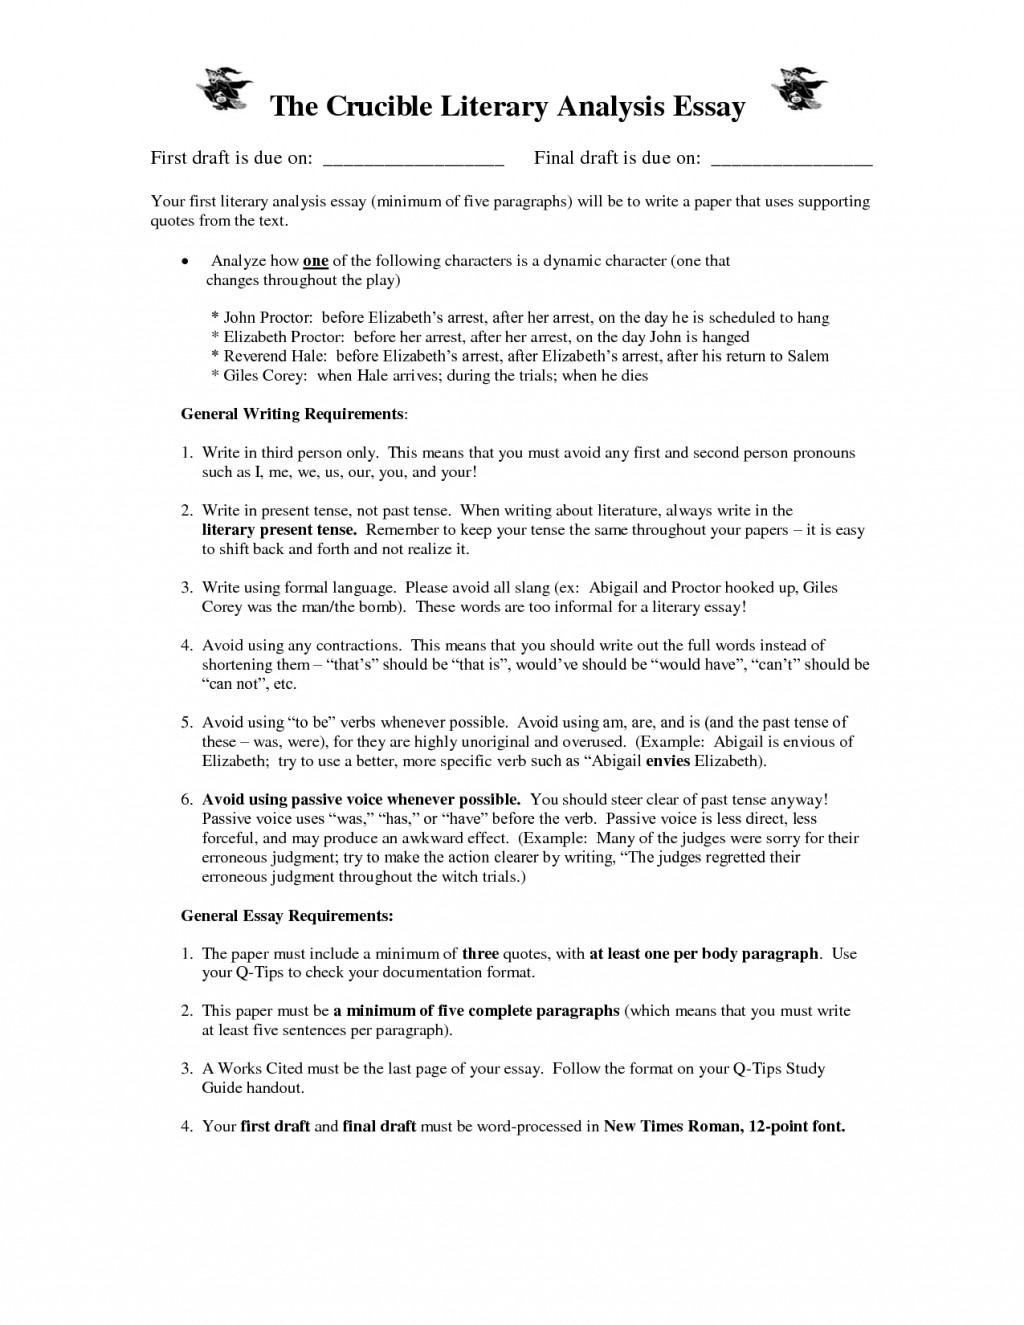 021 Essay Example Literary Essays Of The Crucible How Tote Step By Conclusion On Romeo And Juliet Introduction Do You Outline 4th Grade Analysis Pdf Formidable To Write A Good English Literature 4 Large